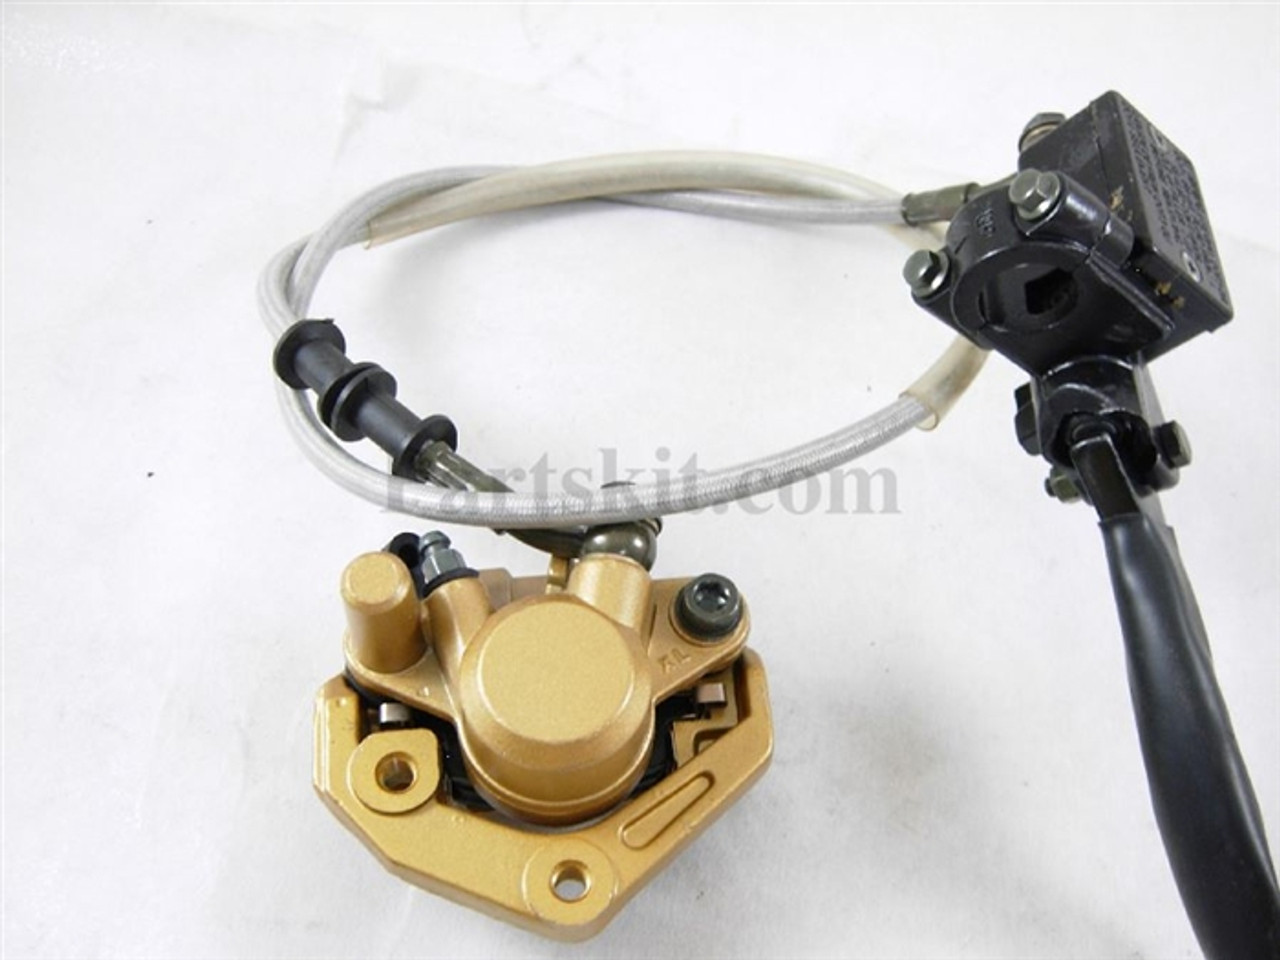 ATD-125A BRAKE ASSEMBLY/assy ( front )